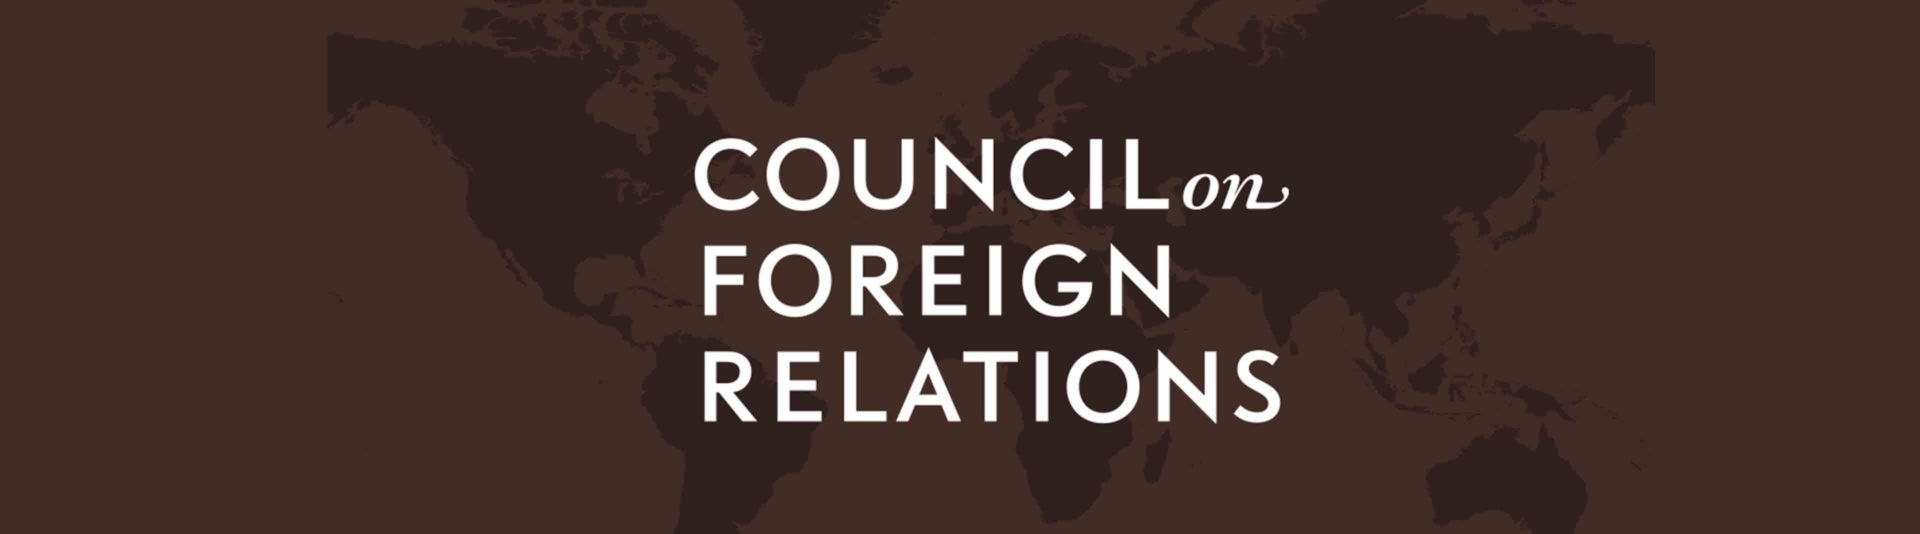 council-on-foreign-relations-3